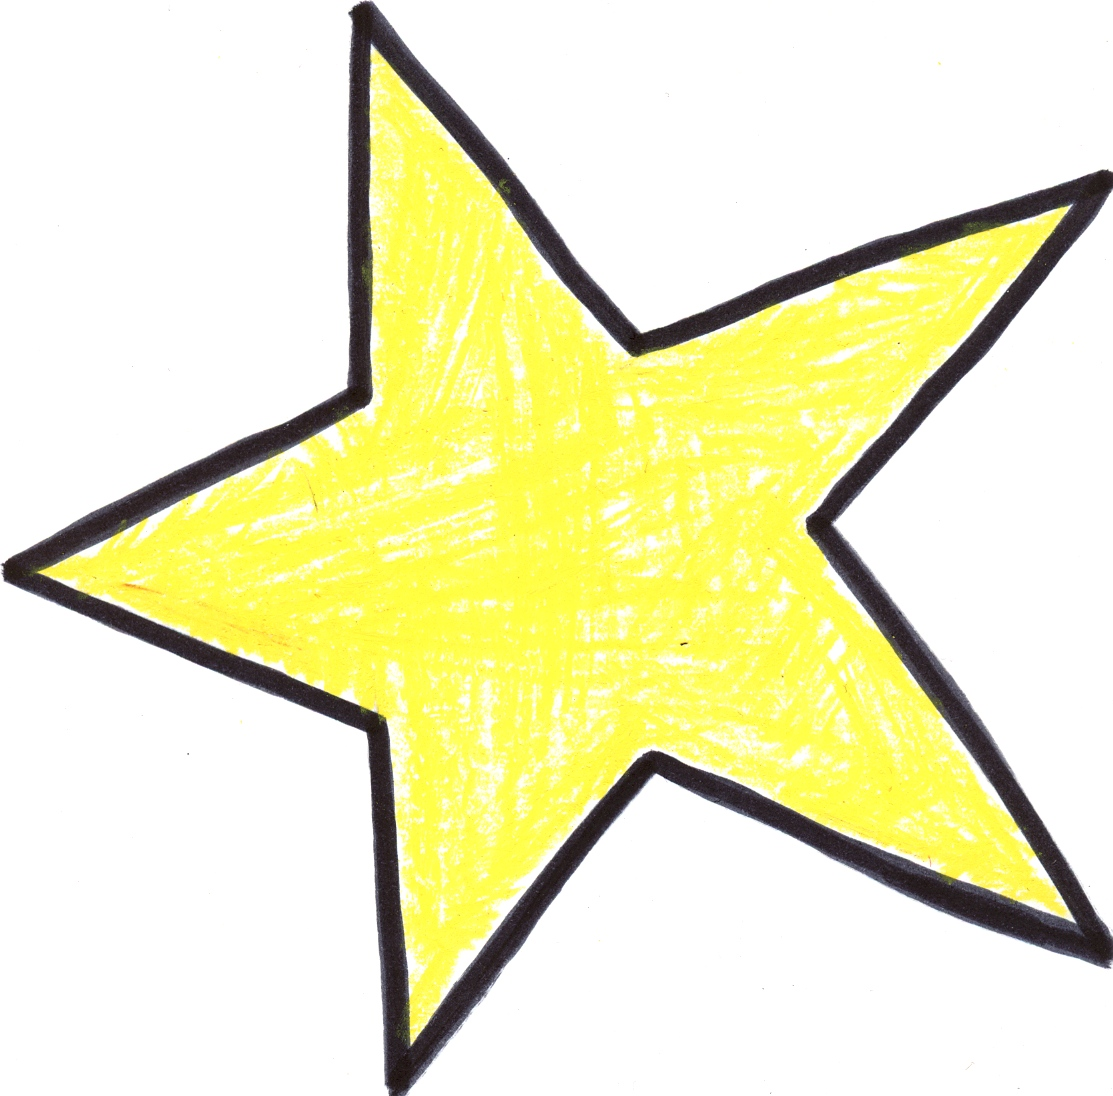 1113x1096 Star Clipart And Animated Graphics Of Stars 2